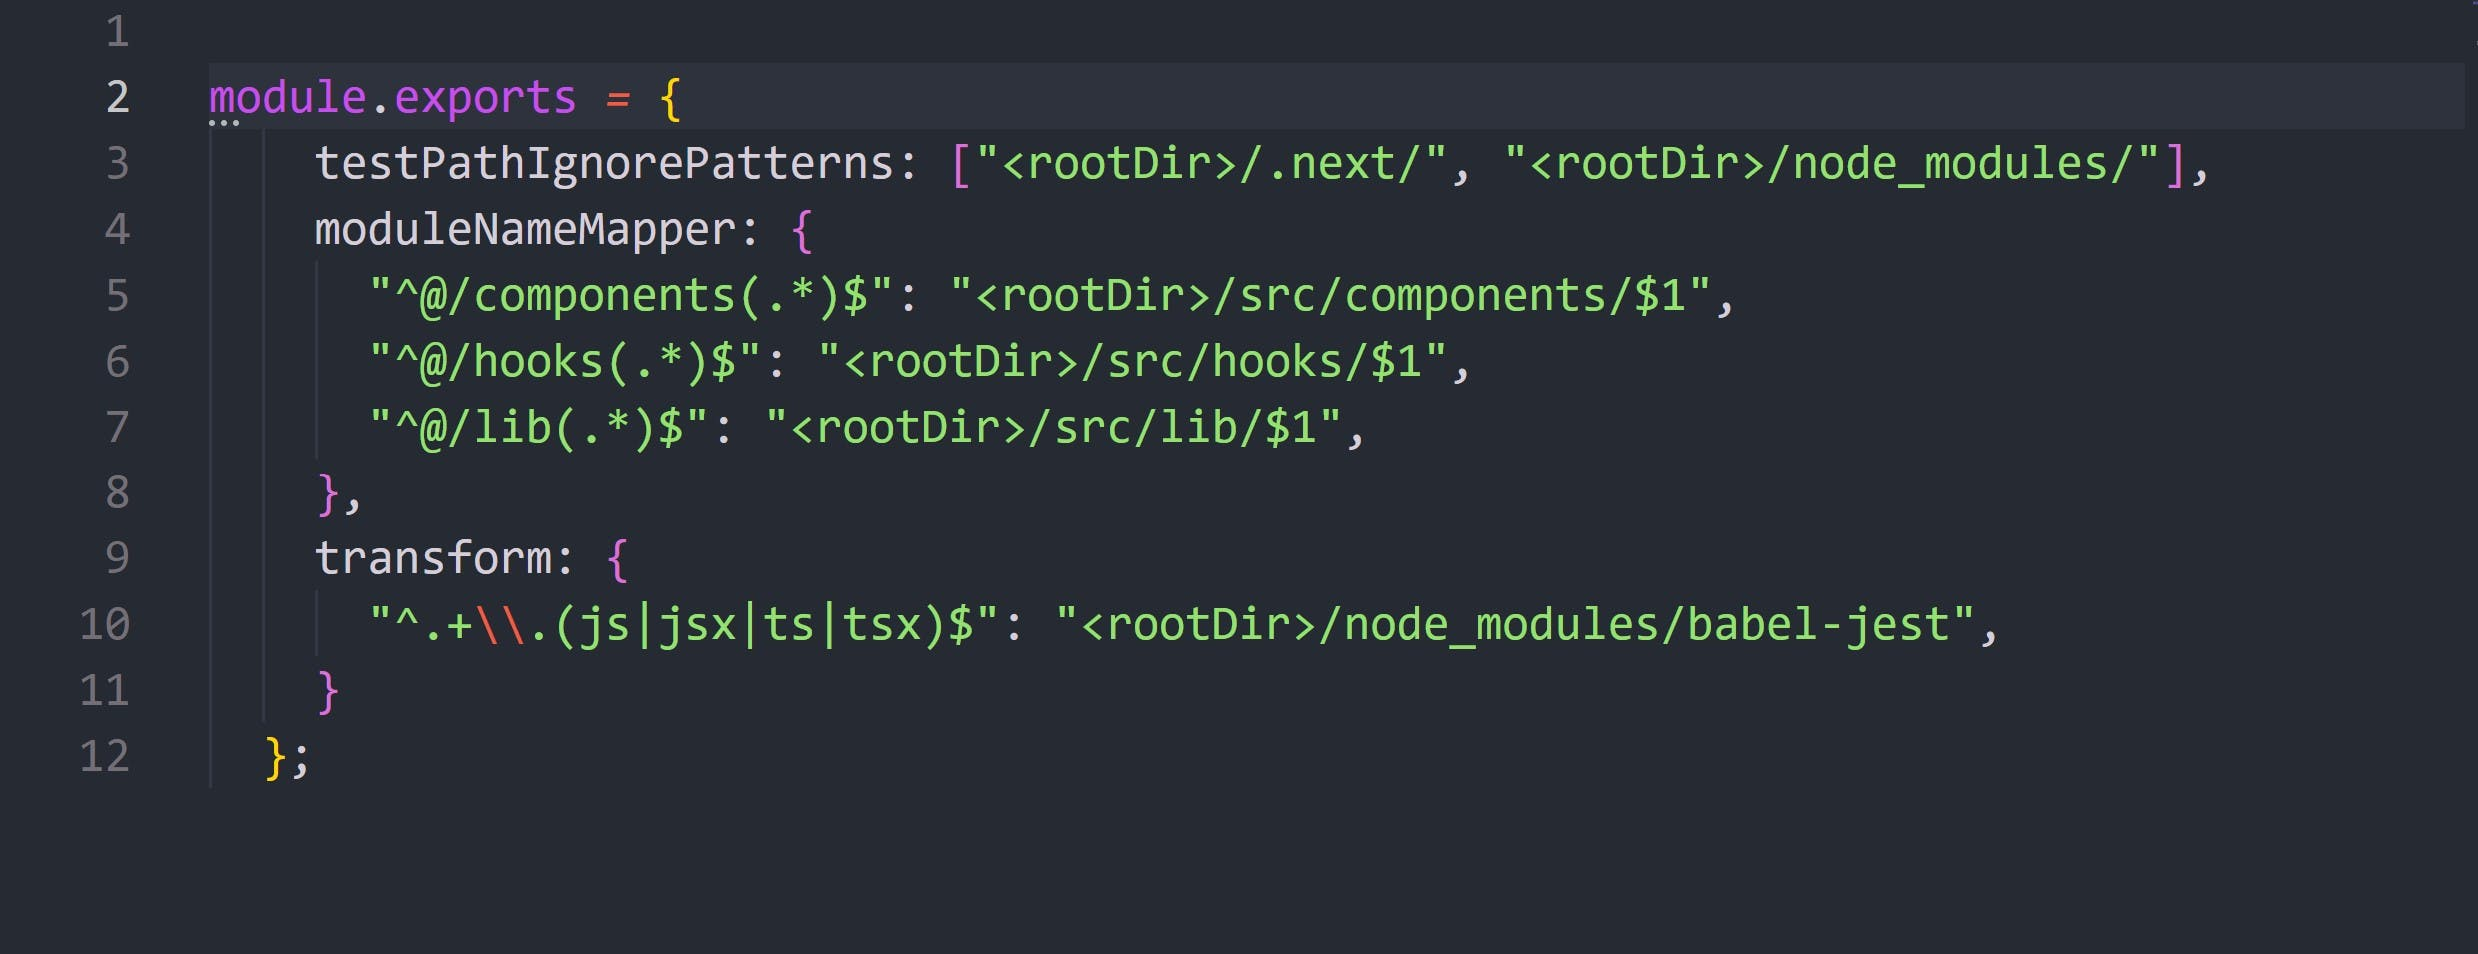 Our jest.config file with path aliases setup along with ignore files and babel-jest transform